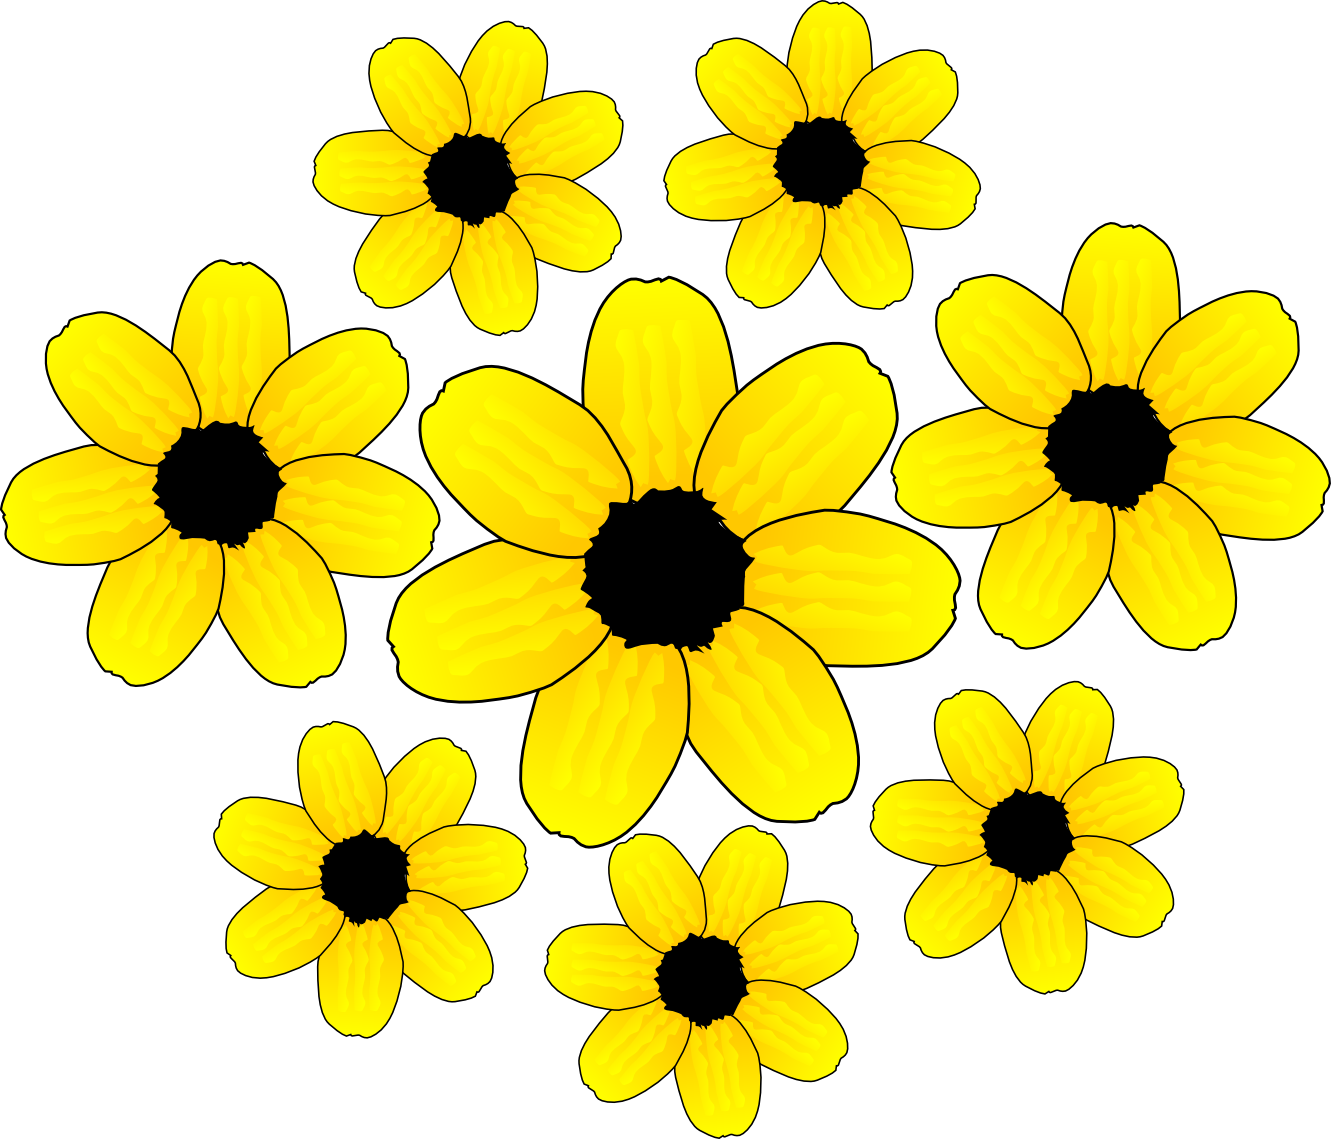 Yellow flower clipart images banner download Yellow flower clip art clipart | Clipart Panda - Free ... banner download